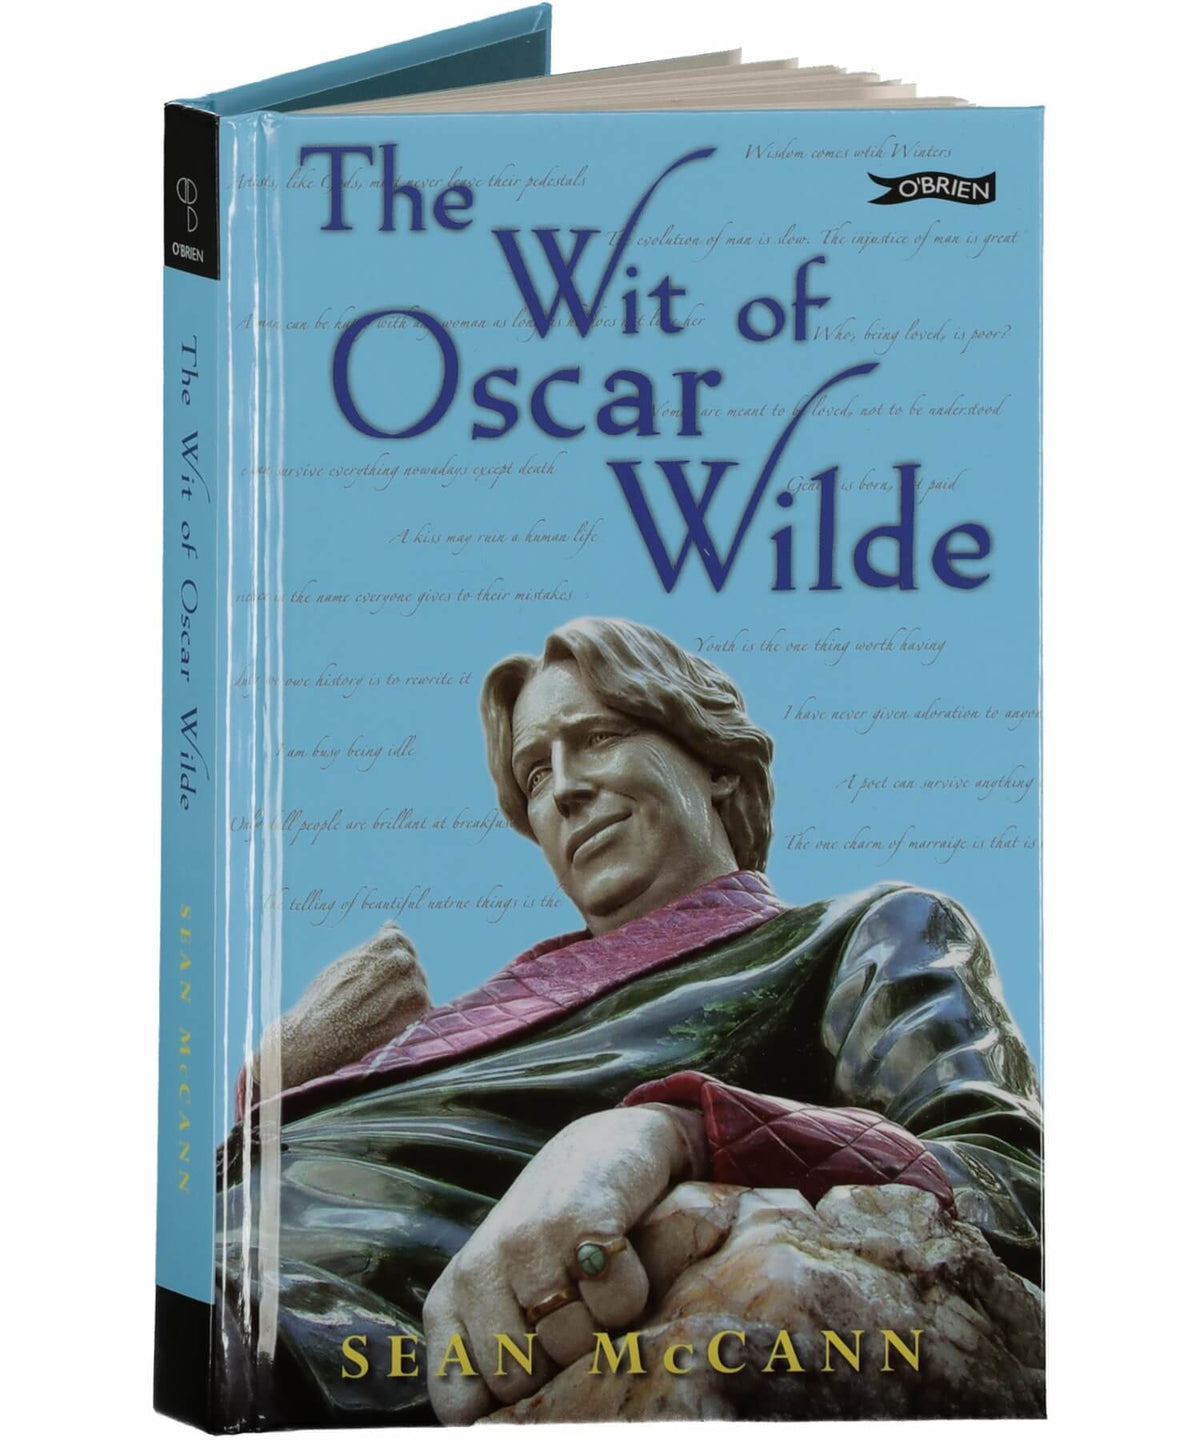 The Wit of Oscar Wilde OBrien Press Books